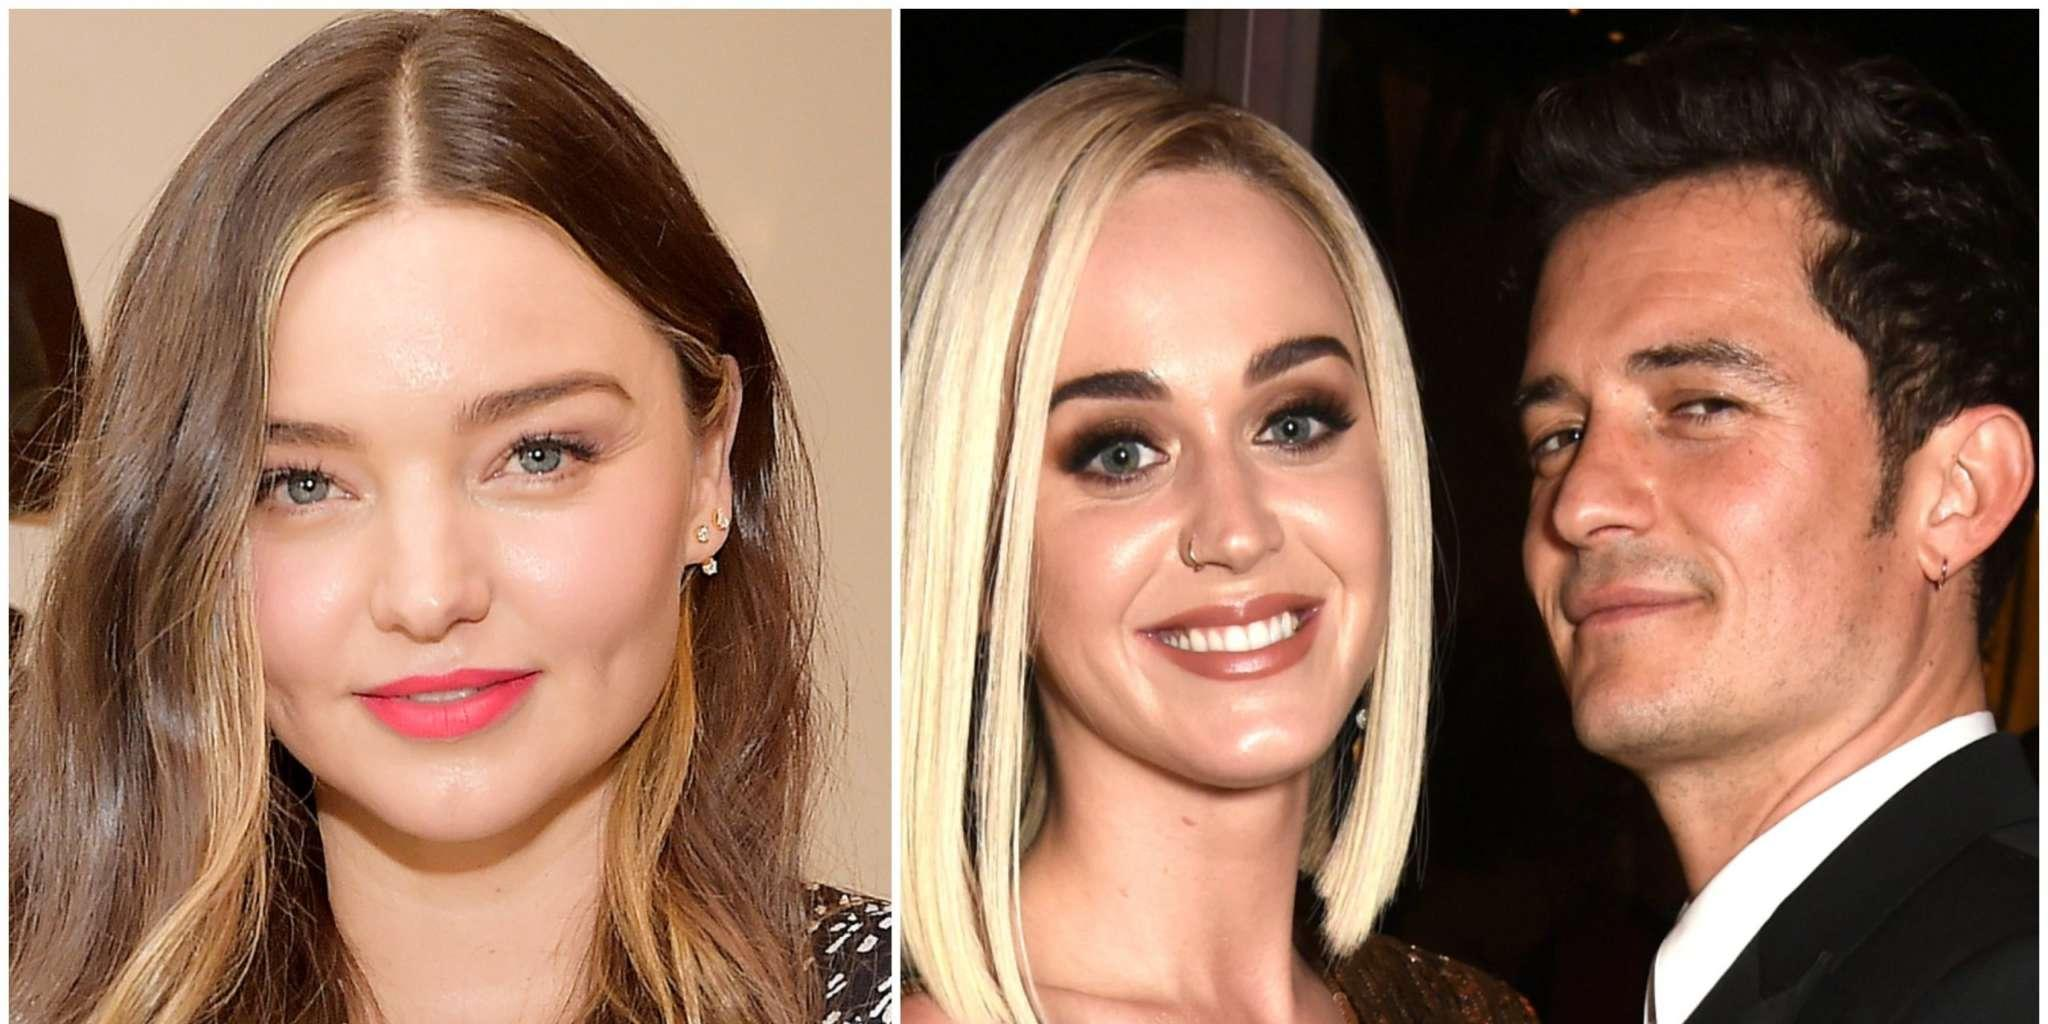 Katy Perry 'Genuinely Friends' With Orlando Bloom's Former Wife Miranda Kerr - She Can't Wait For The Model To Meet Her Baby!